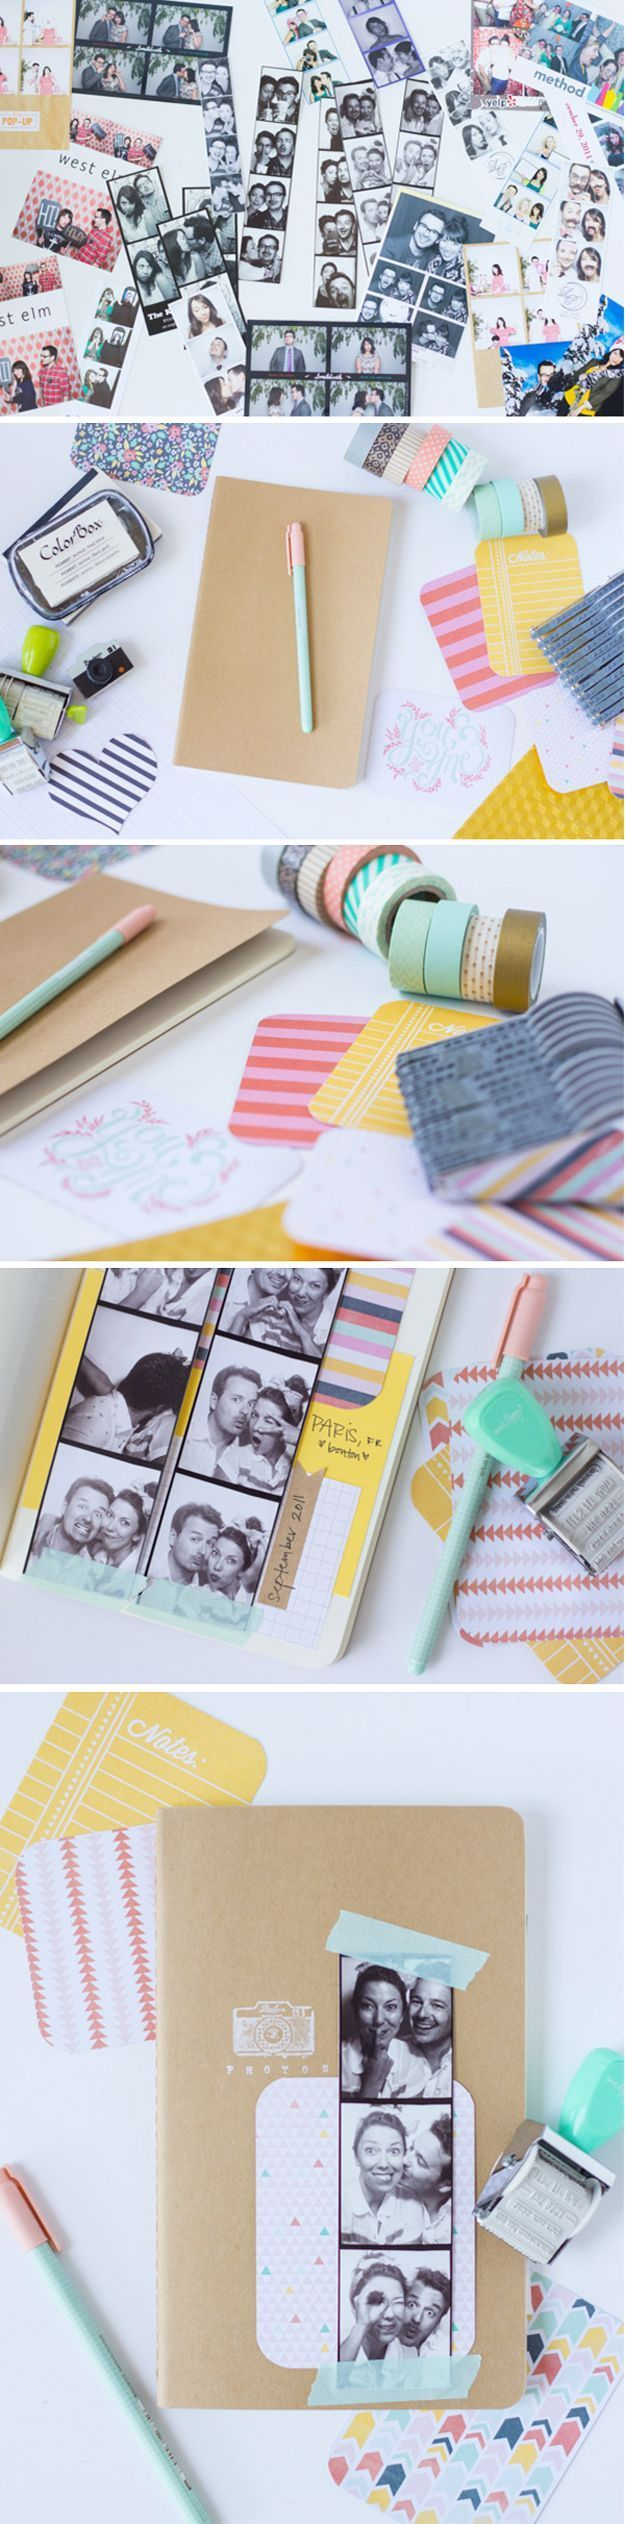 Scrapbook ideas recycled - 100 Washi Tape Ideas To Style And Personalize Your Items